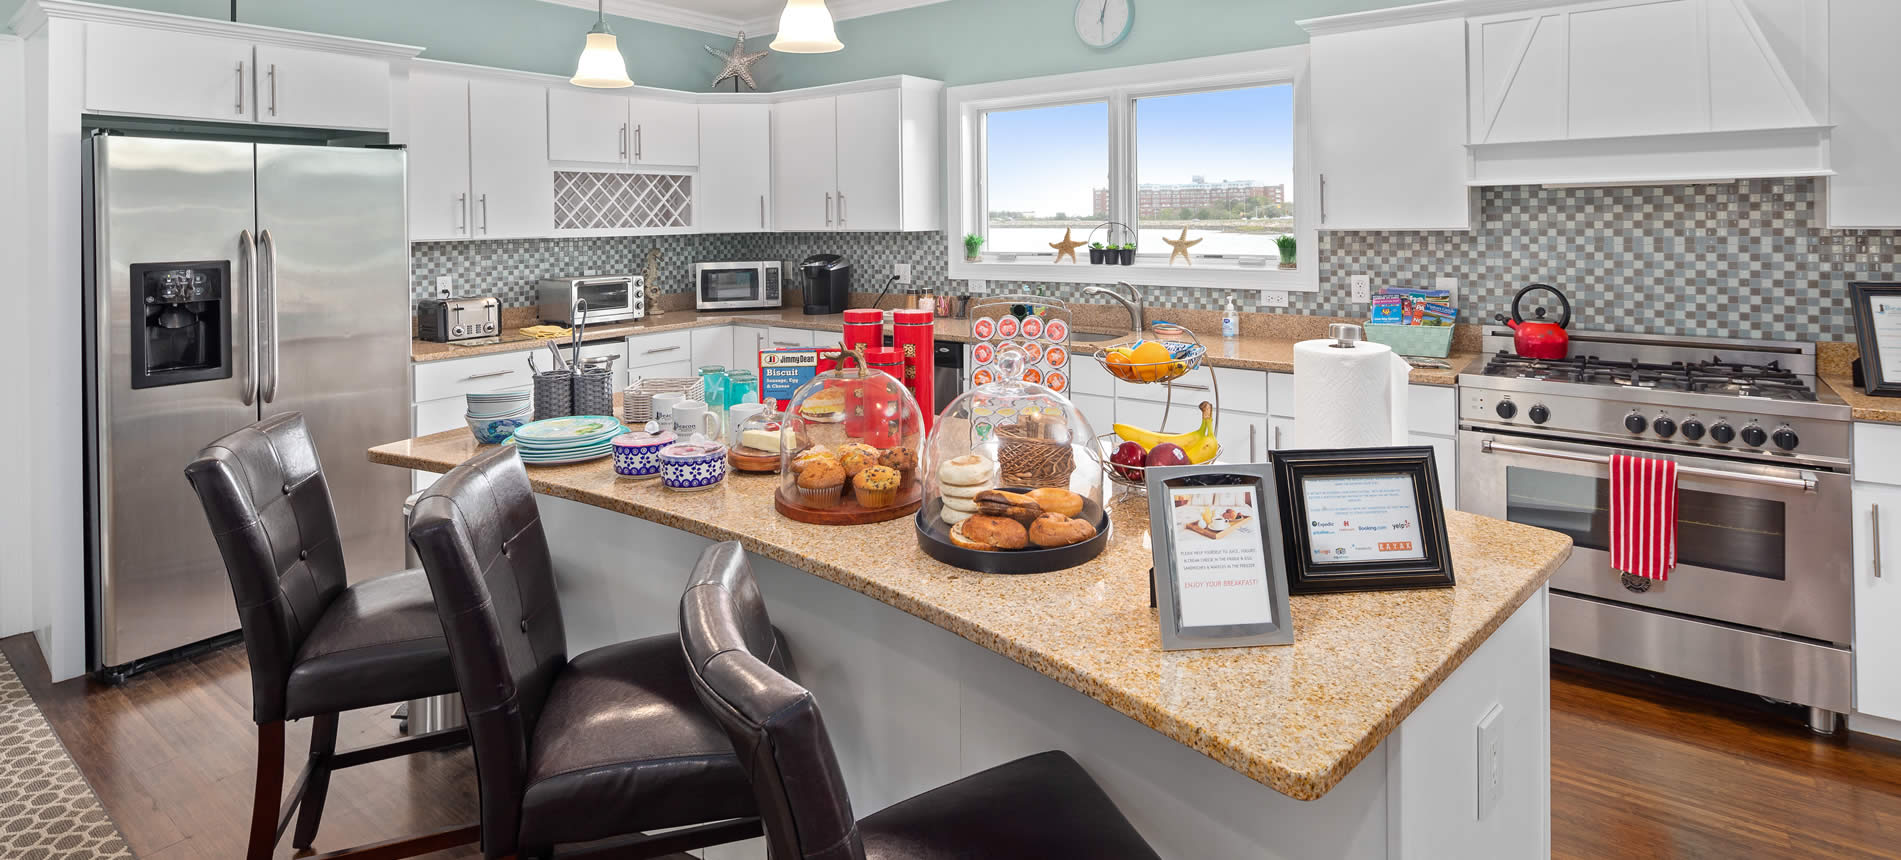 hull ma boutique hotel waterfront includes continental breakfast sitting on counter in kitchen